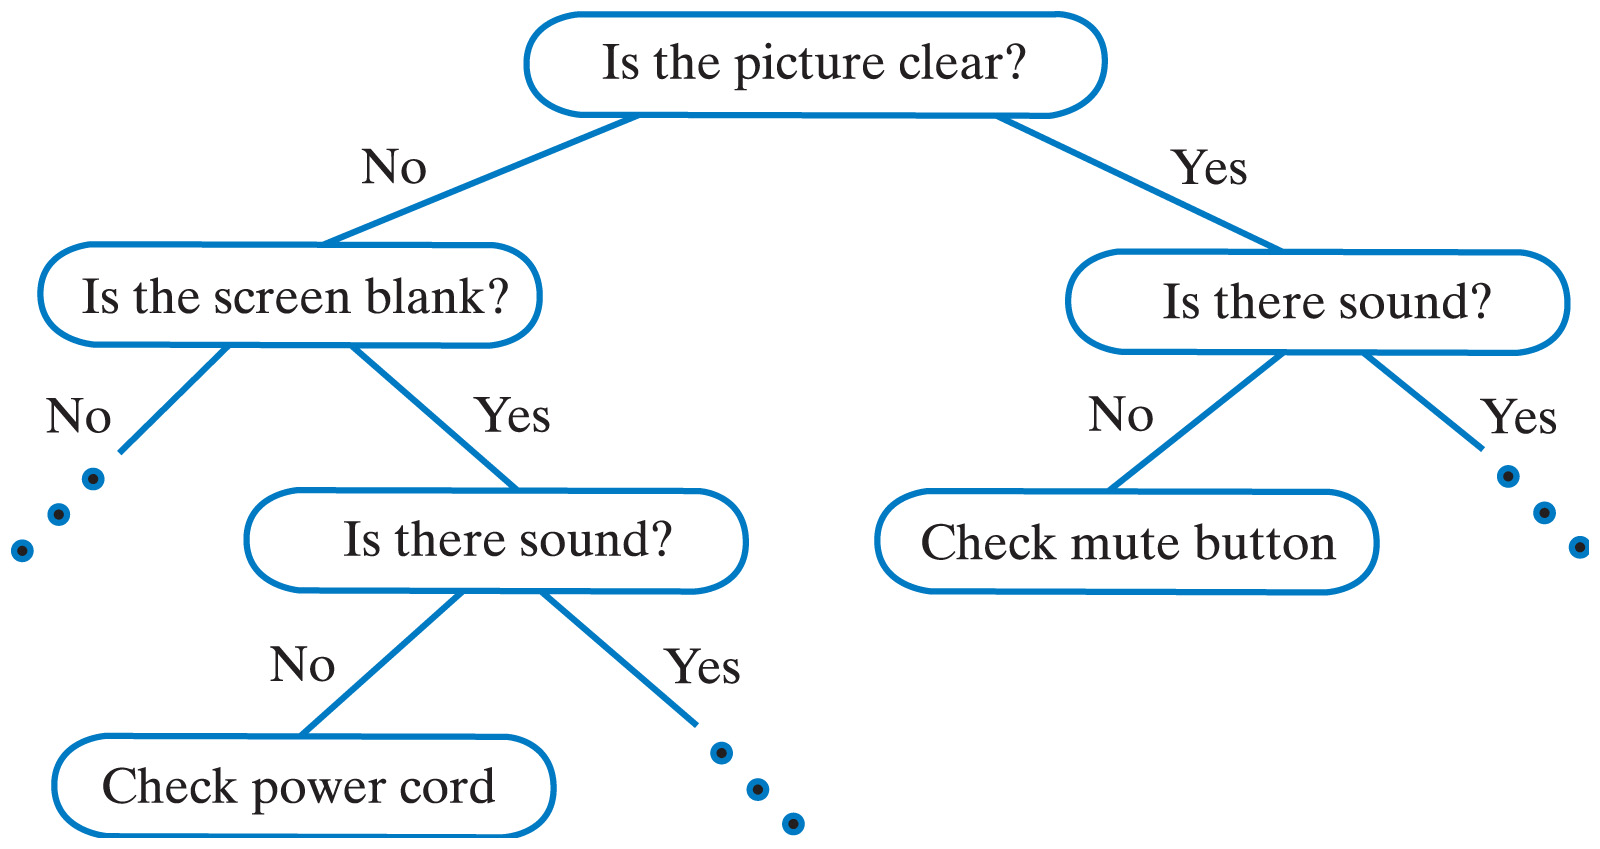 Decision Trees In Board Games